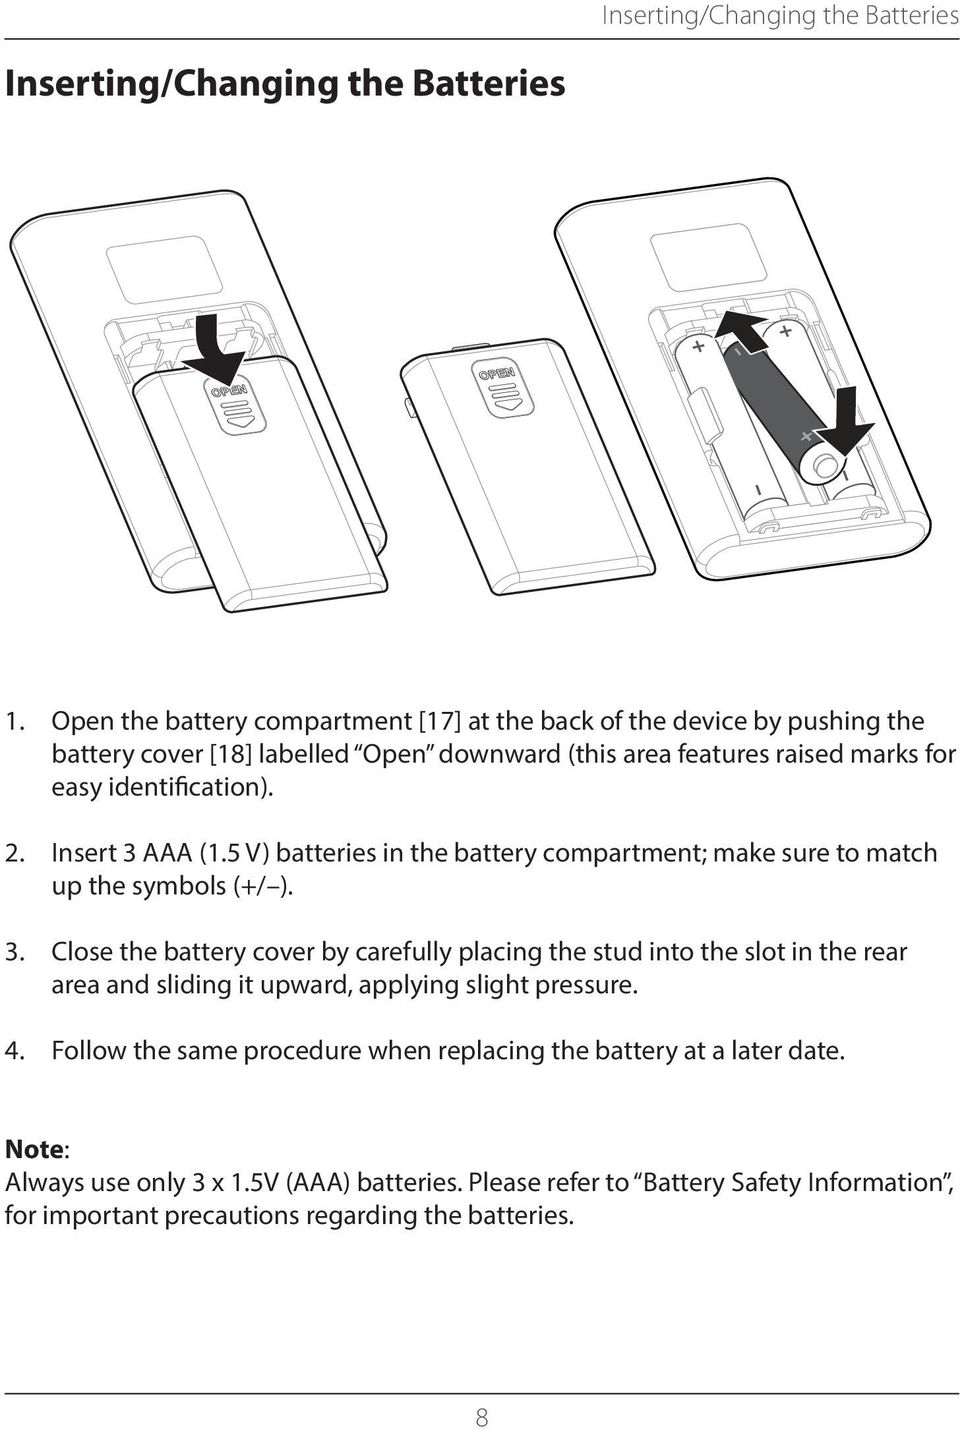 2. Insert 3 AAA (1.5 V) batteries in the battery compartment; make sure to match up the symbols (+/ ). 3. Close the battery cover by carefully placing the stud into the slot in the rear area and sliding it upward, applying slight pressure.